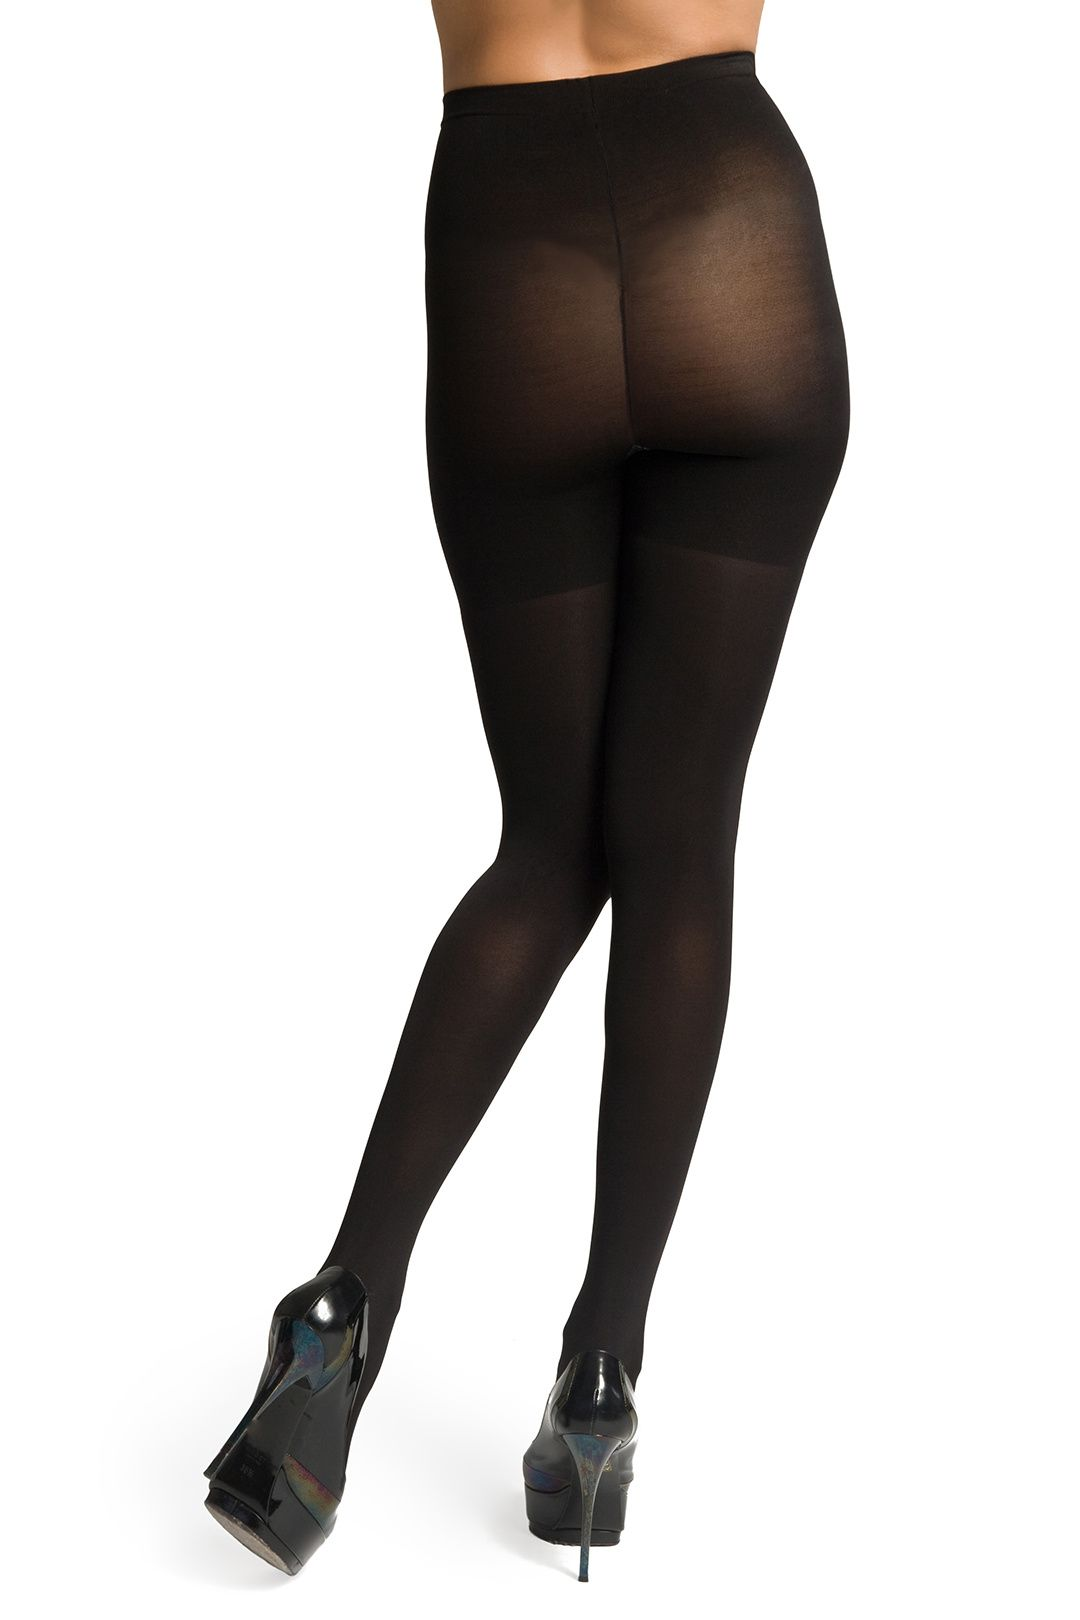 Spanx NEW Black Opaque Women's Size B Tight End Bodyshaping Slimming Tights #028